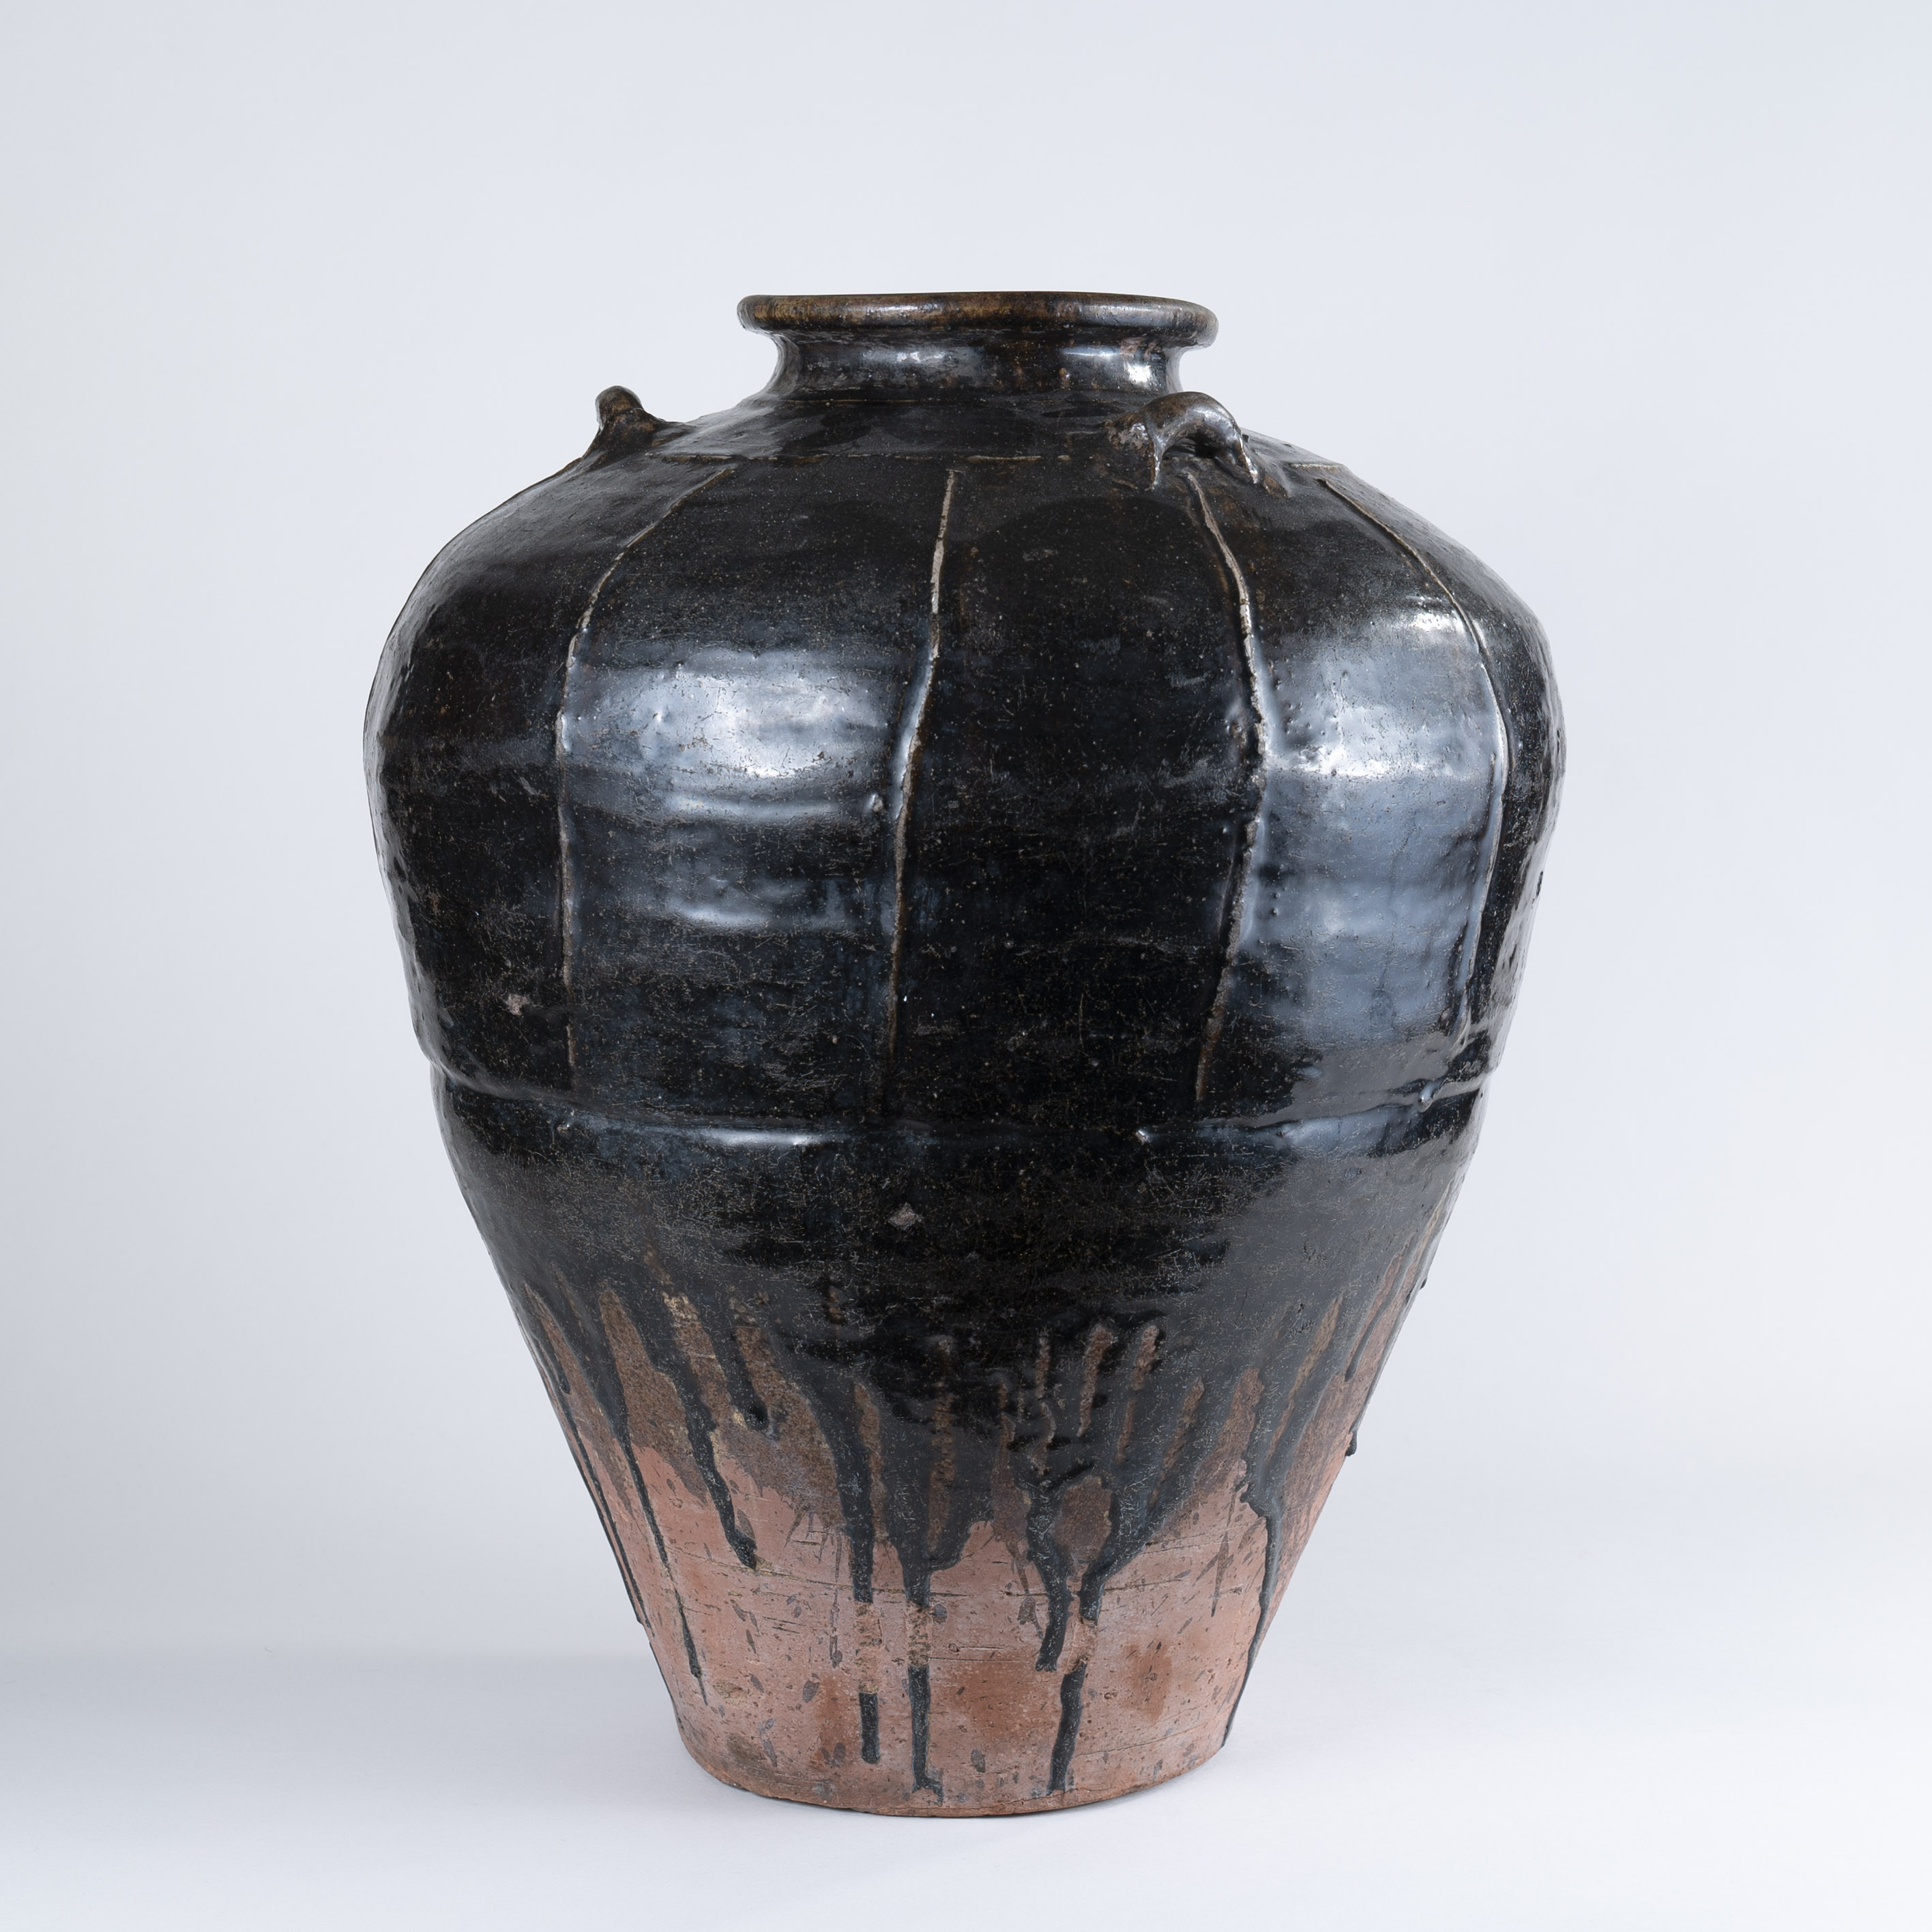 Large Chinese Sung Dynasty Stoneware Jar, 11th Century